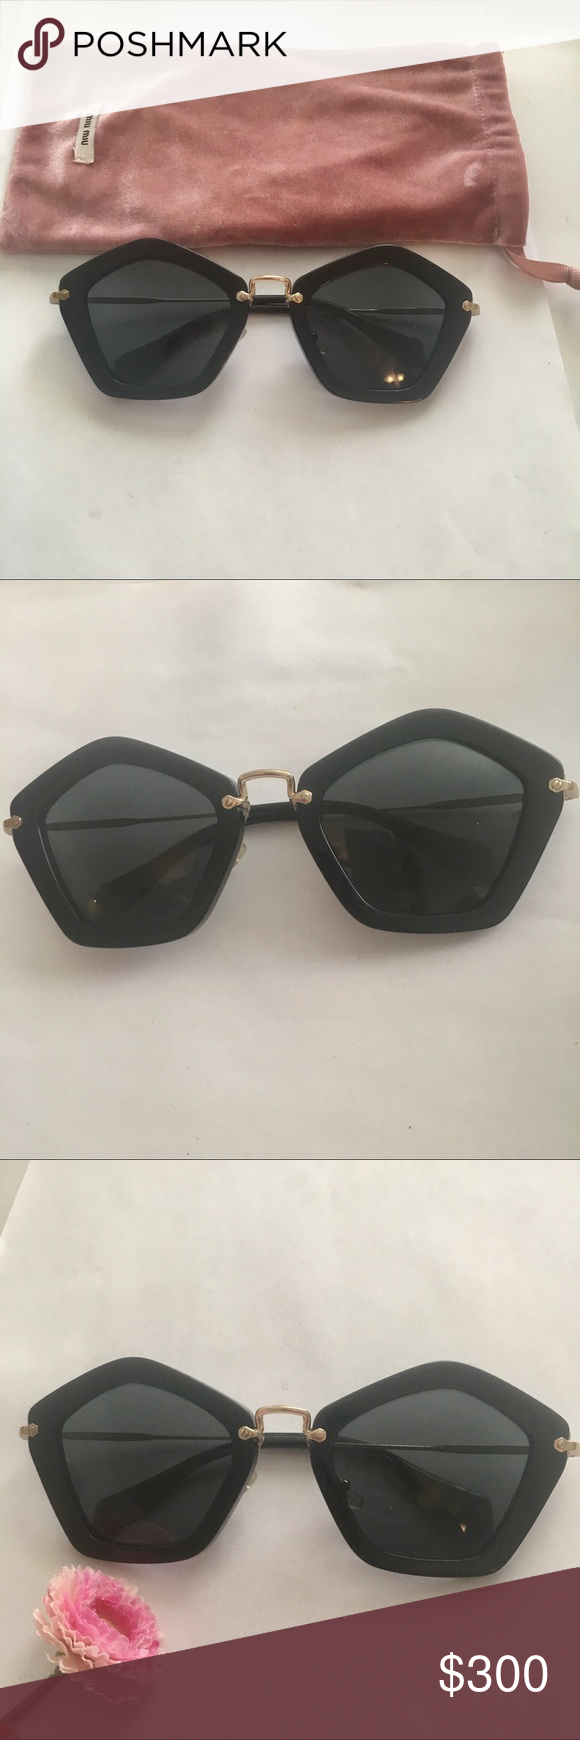 aa8145525f0f Miu miu 100% attentive sunglasses Mu mu authentic sunglasses no scratch Miu  Miu Accessories Sunglasses